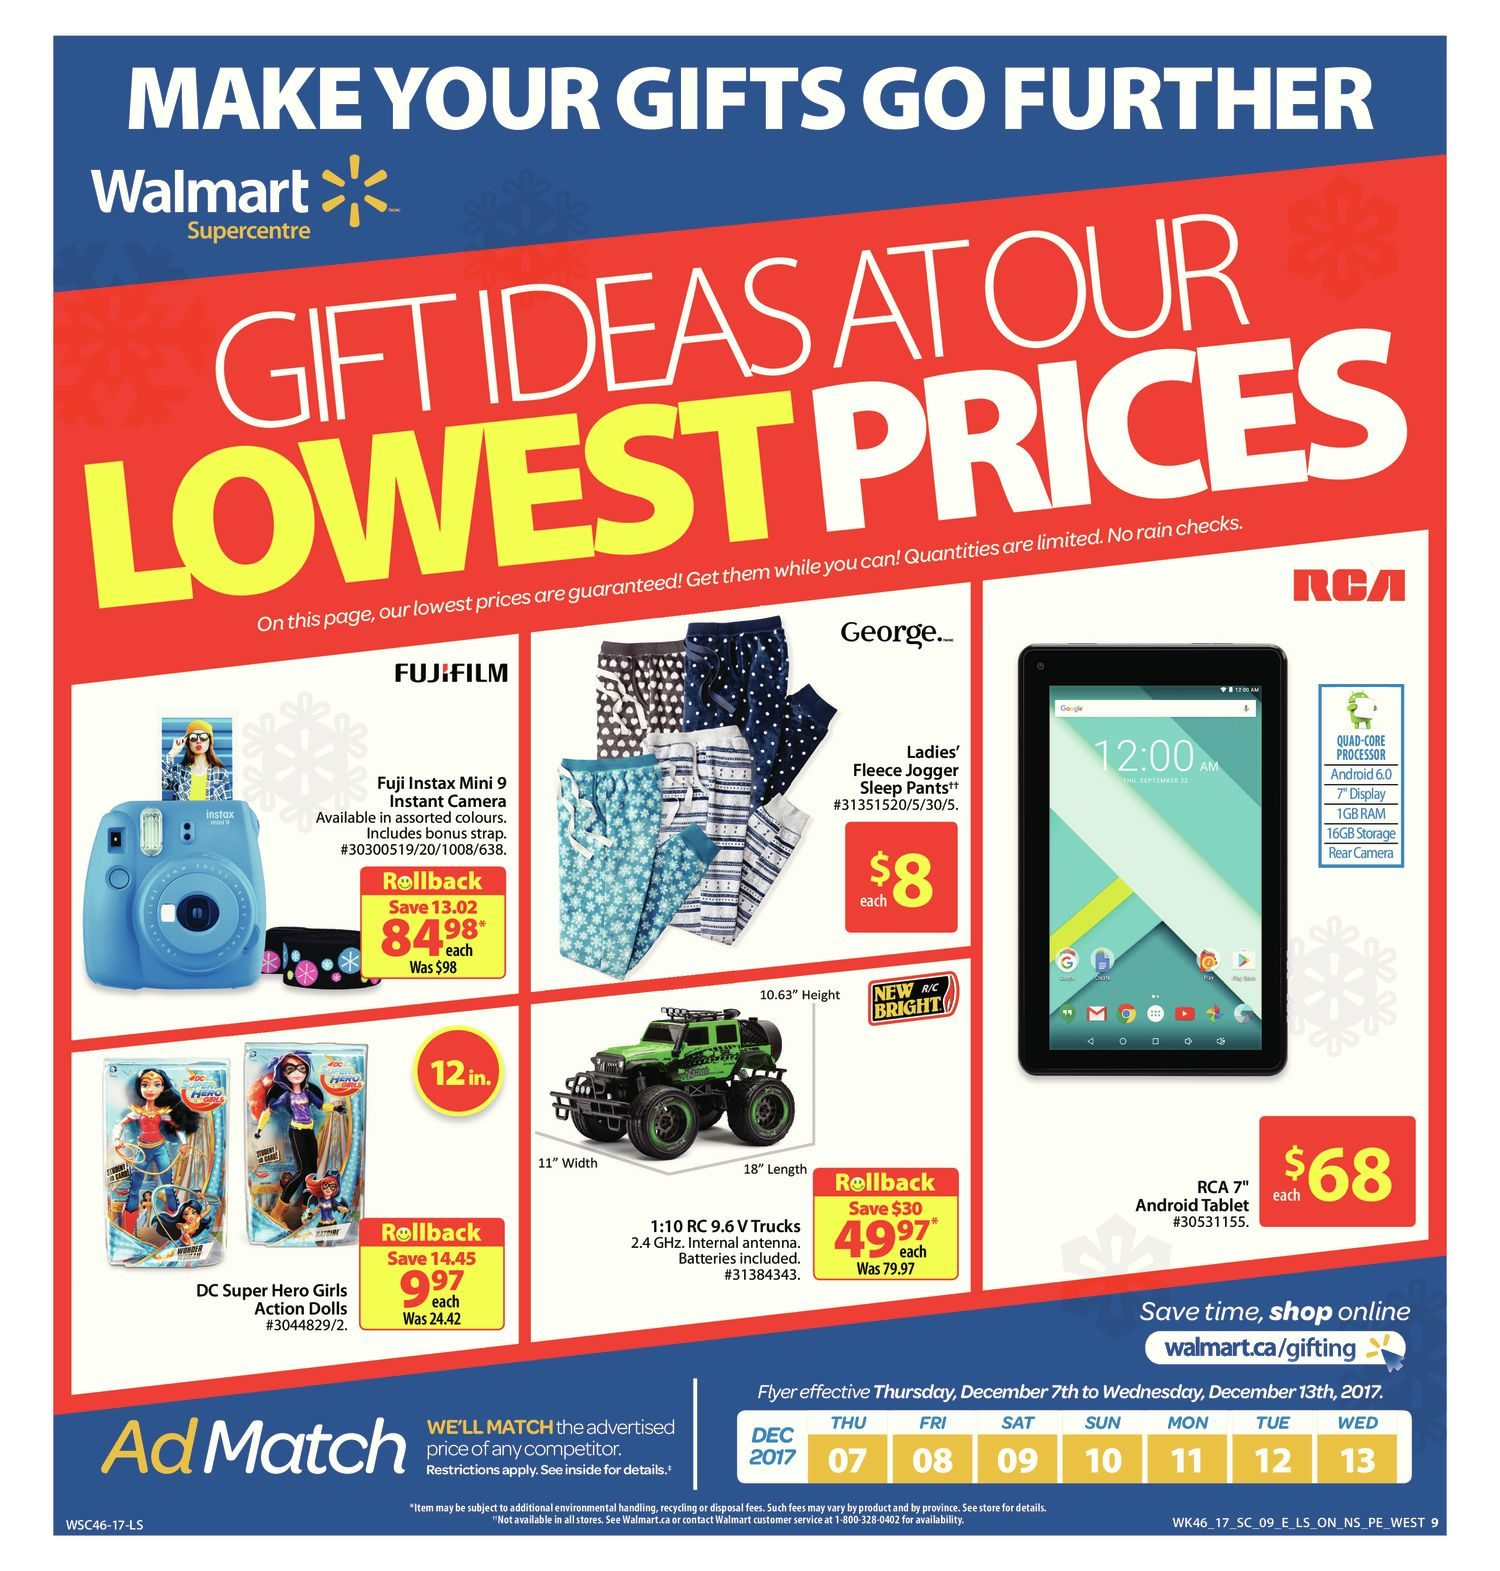 Walmart Weekly Flyer - Supercentre - The Lowest Price is Everything - Dec 7  – 13 - RedFlagDeals.com fb08b9d436f4